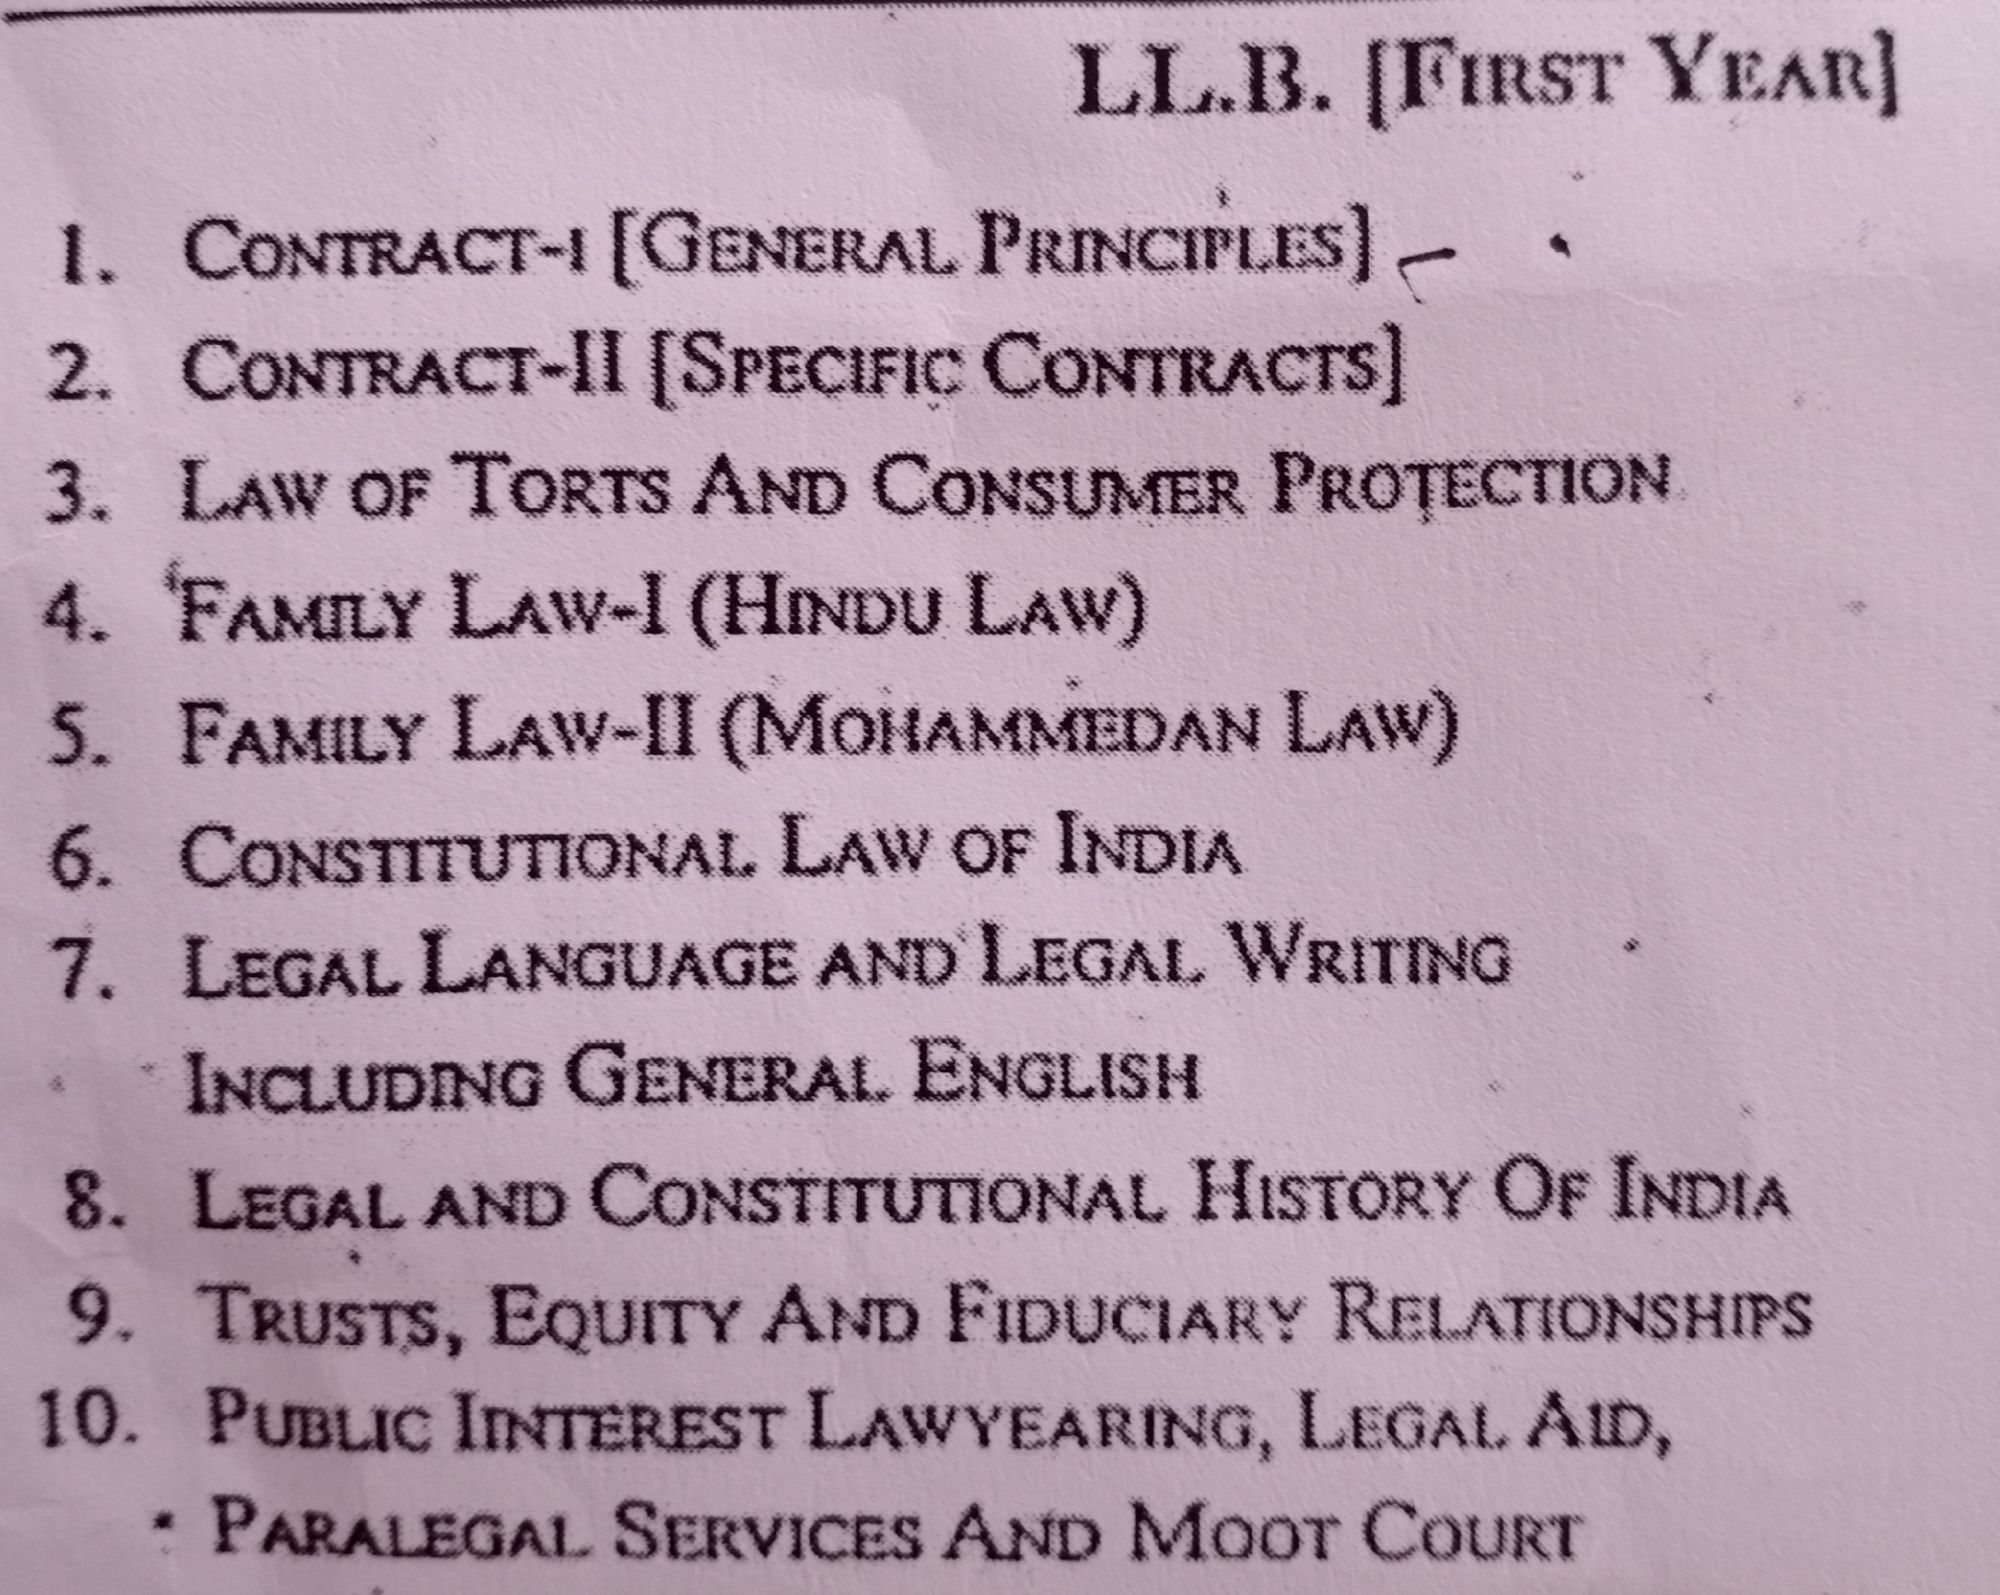 Basanti Lal Babel Legal And Constitutional History of India in Hindi Medium